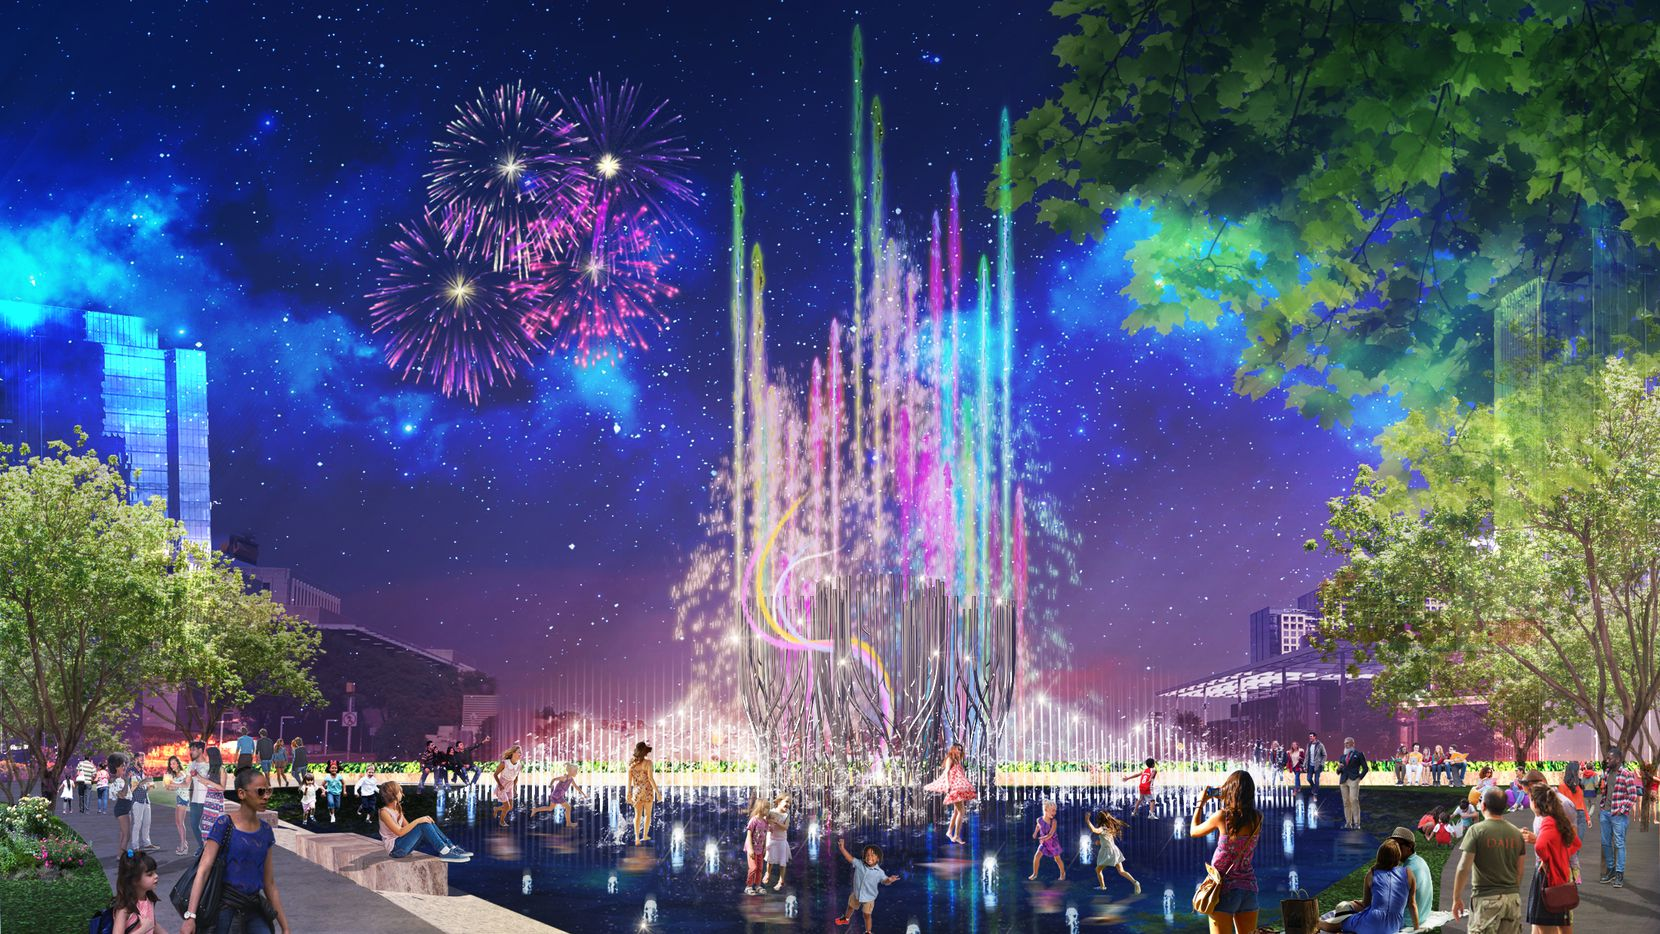 Artist rendering of the Nancy Best Fountain in Klyde Warren, which will feature the world's tallest water jets. Construction on the $10 million project will begin in the summer with completion expected in December 2021.